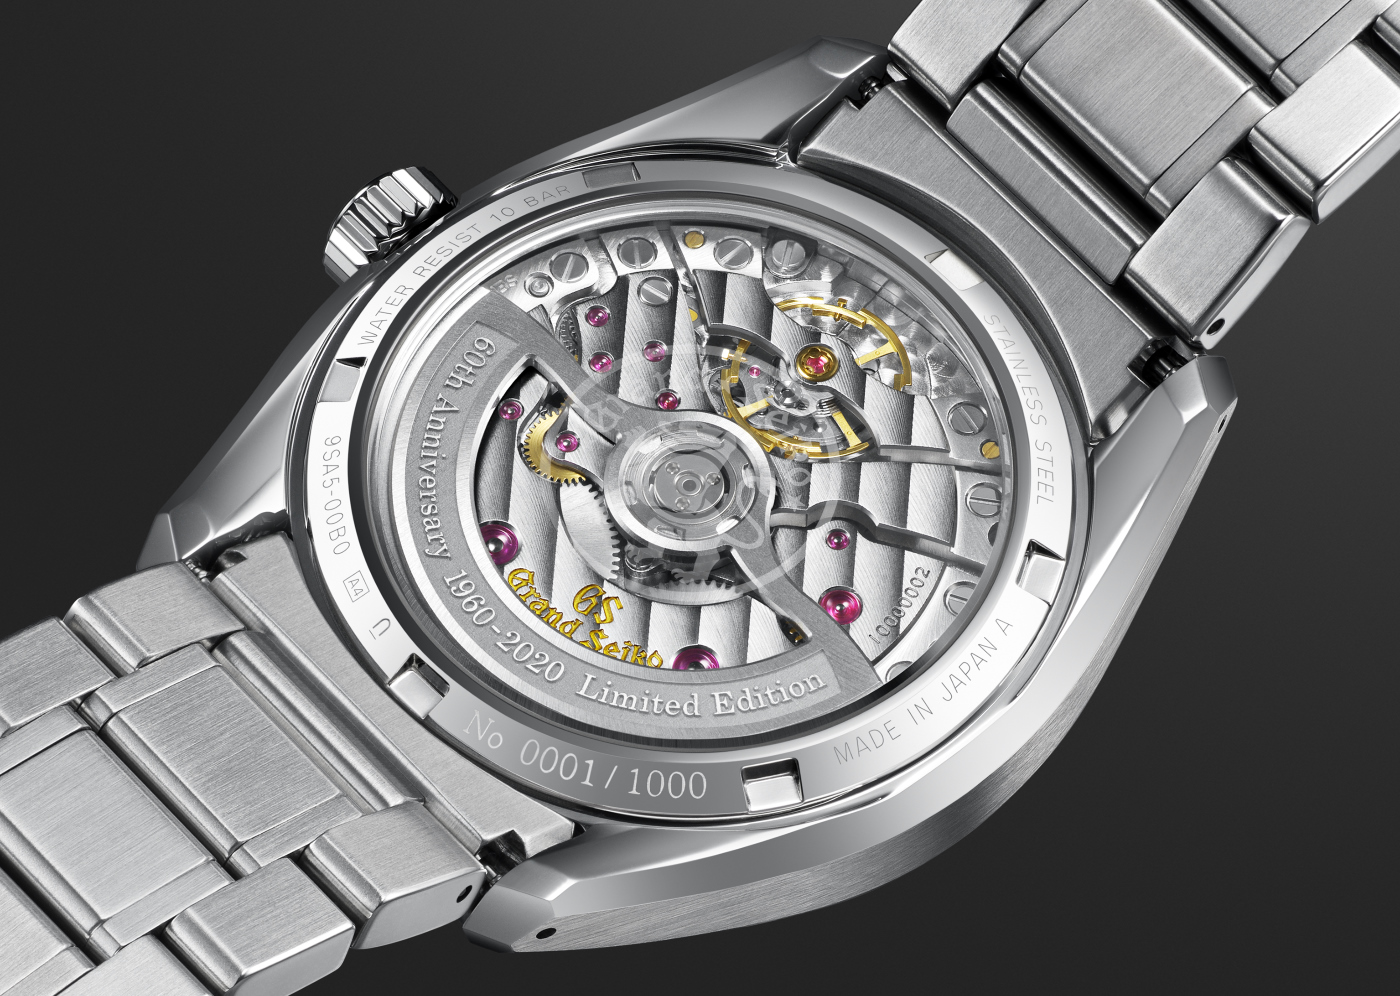 Grand Seiko's new addition to the 60th anniversary collection